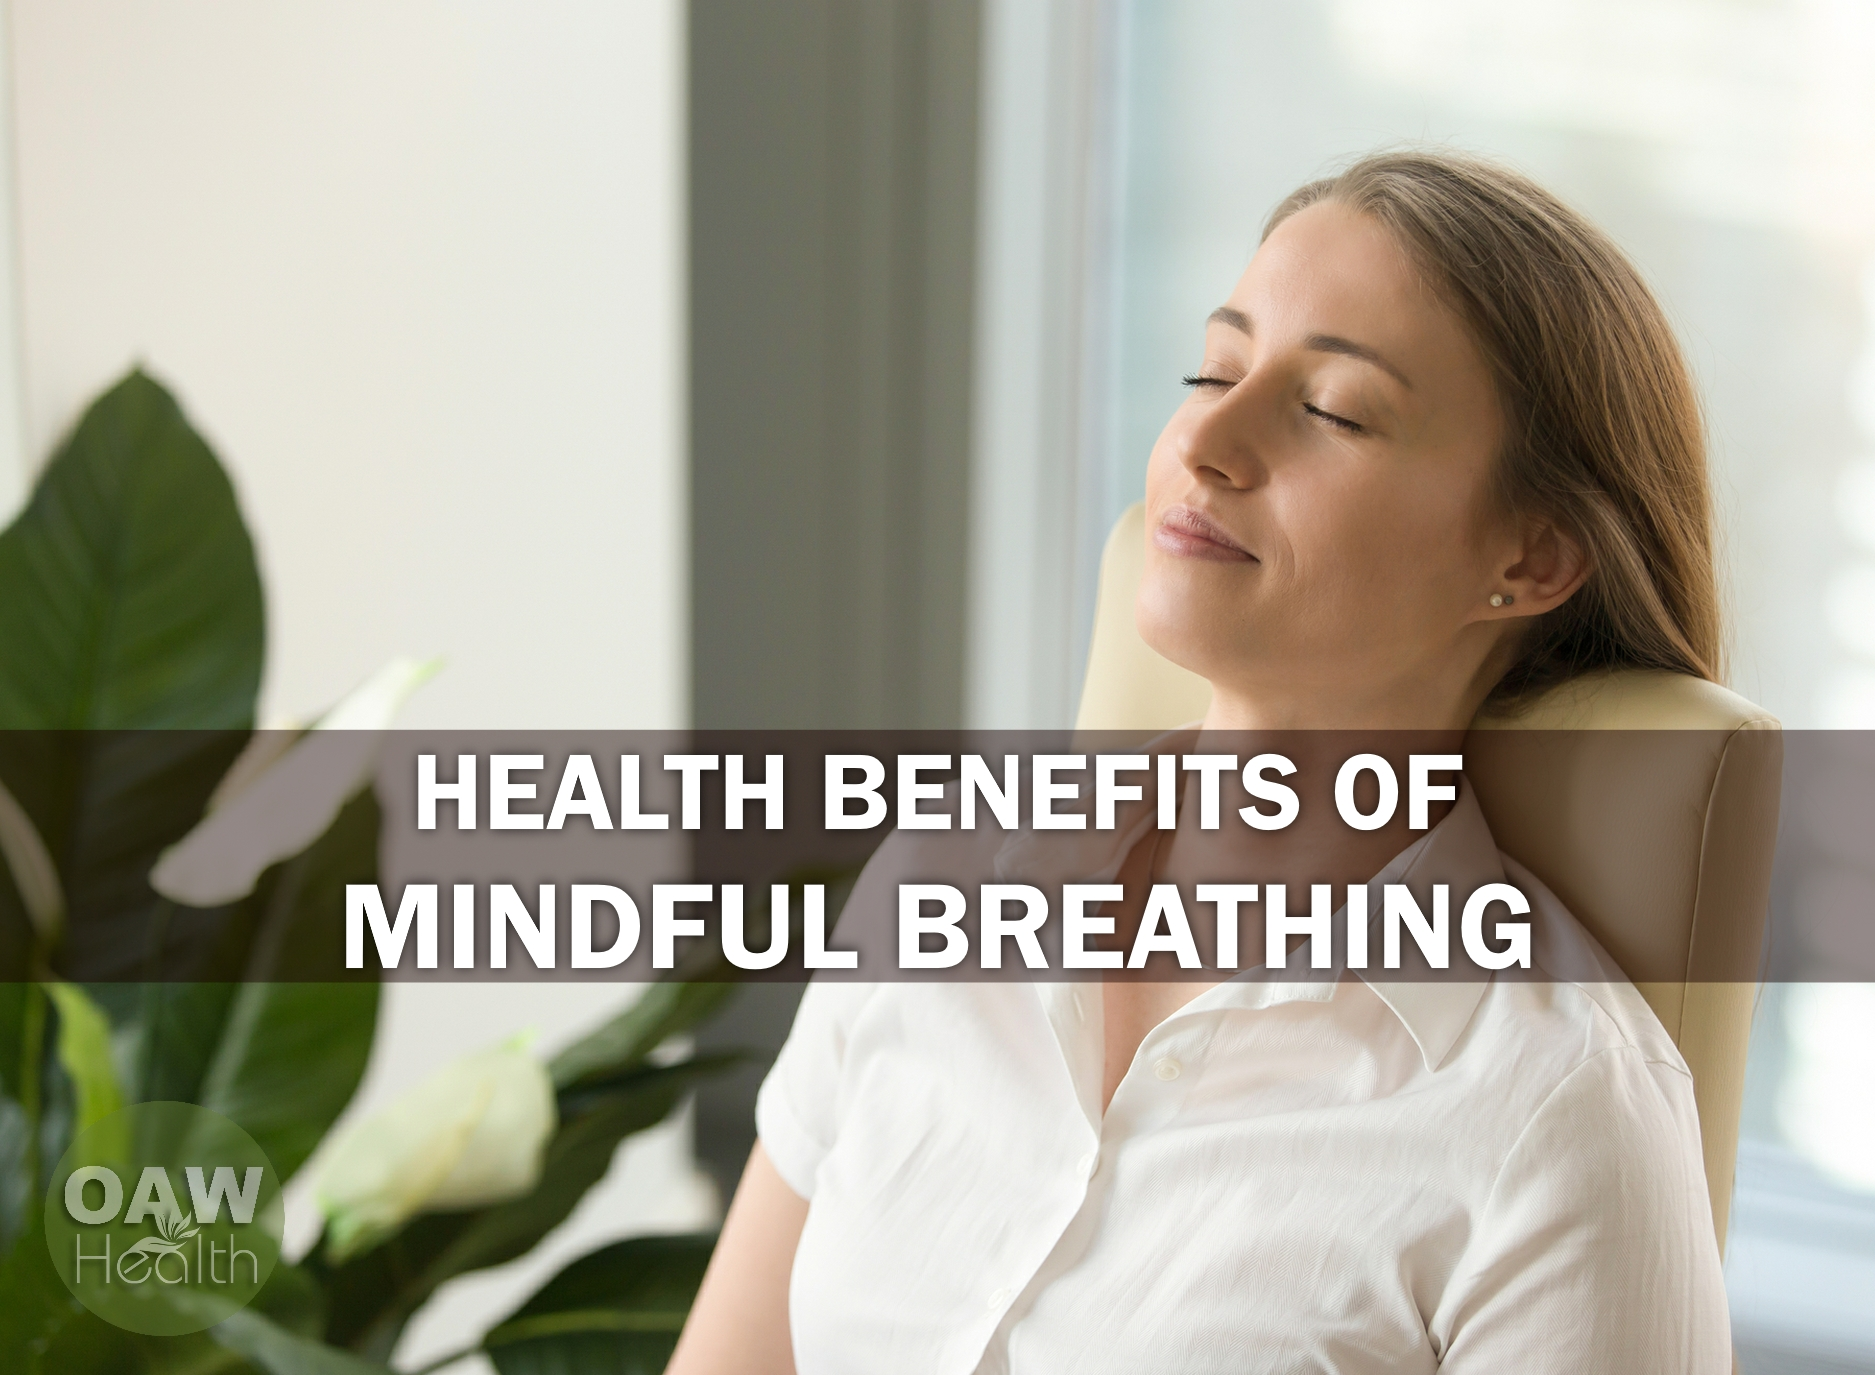 Health Benefits of Mindful Breathing